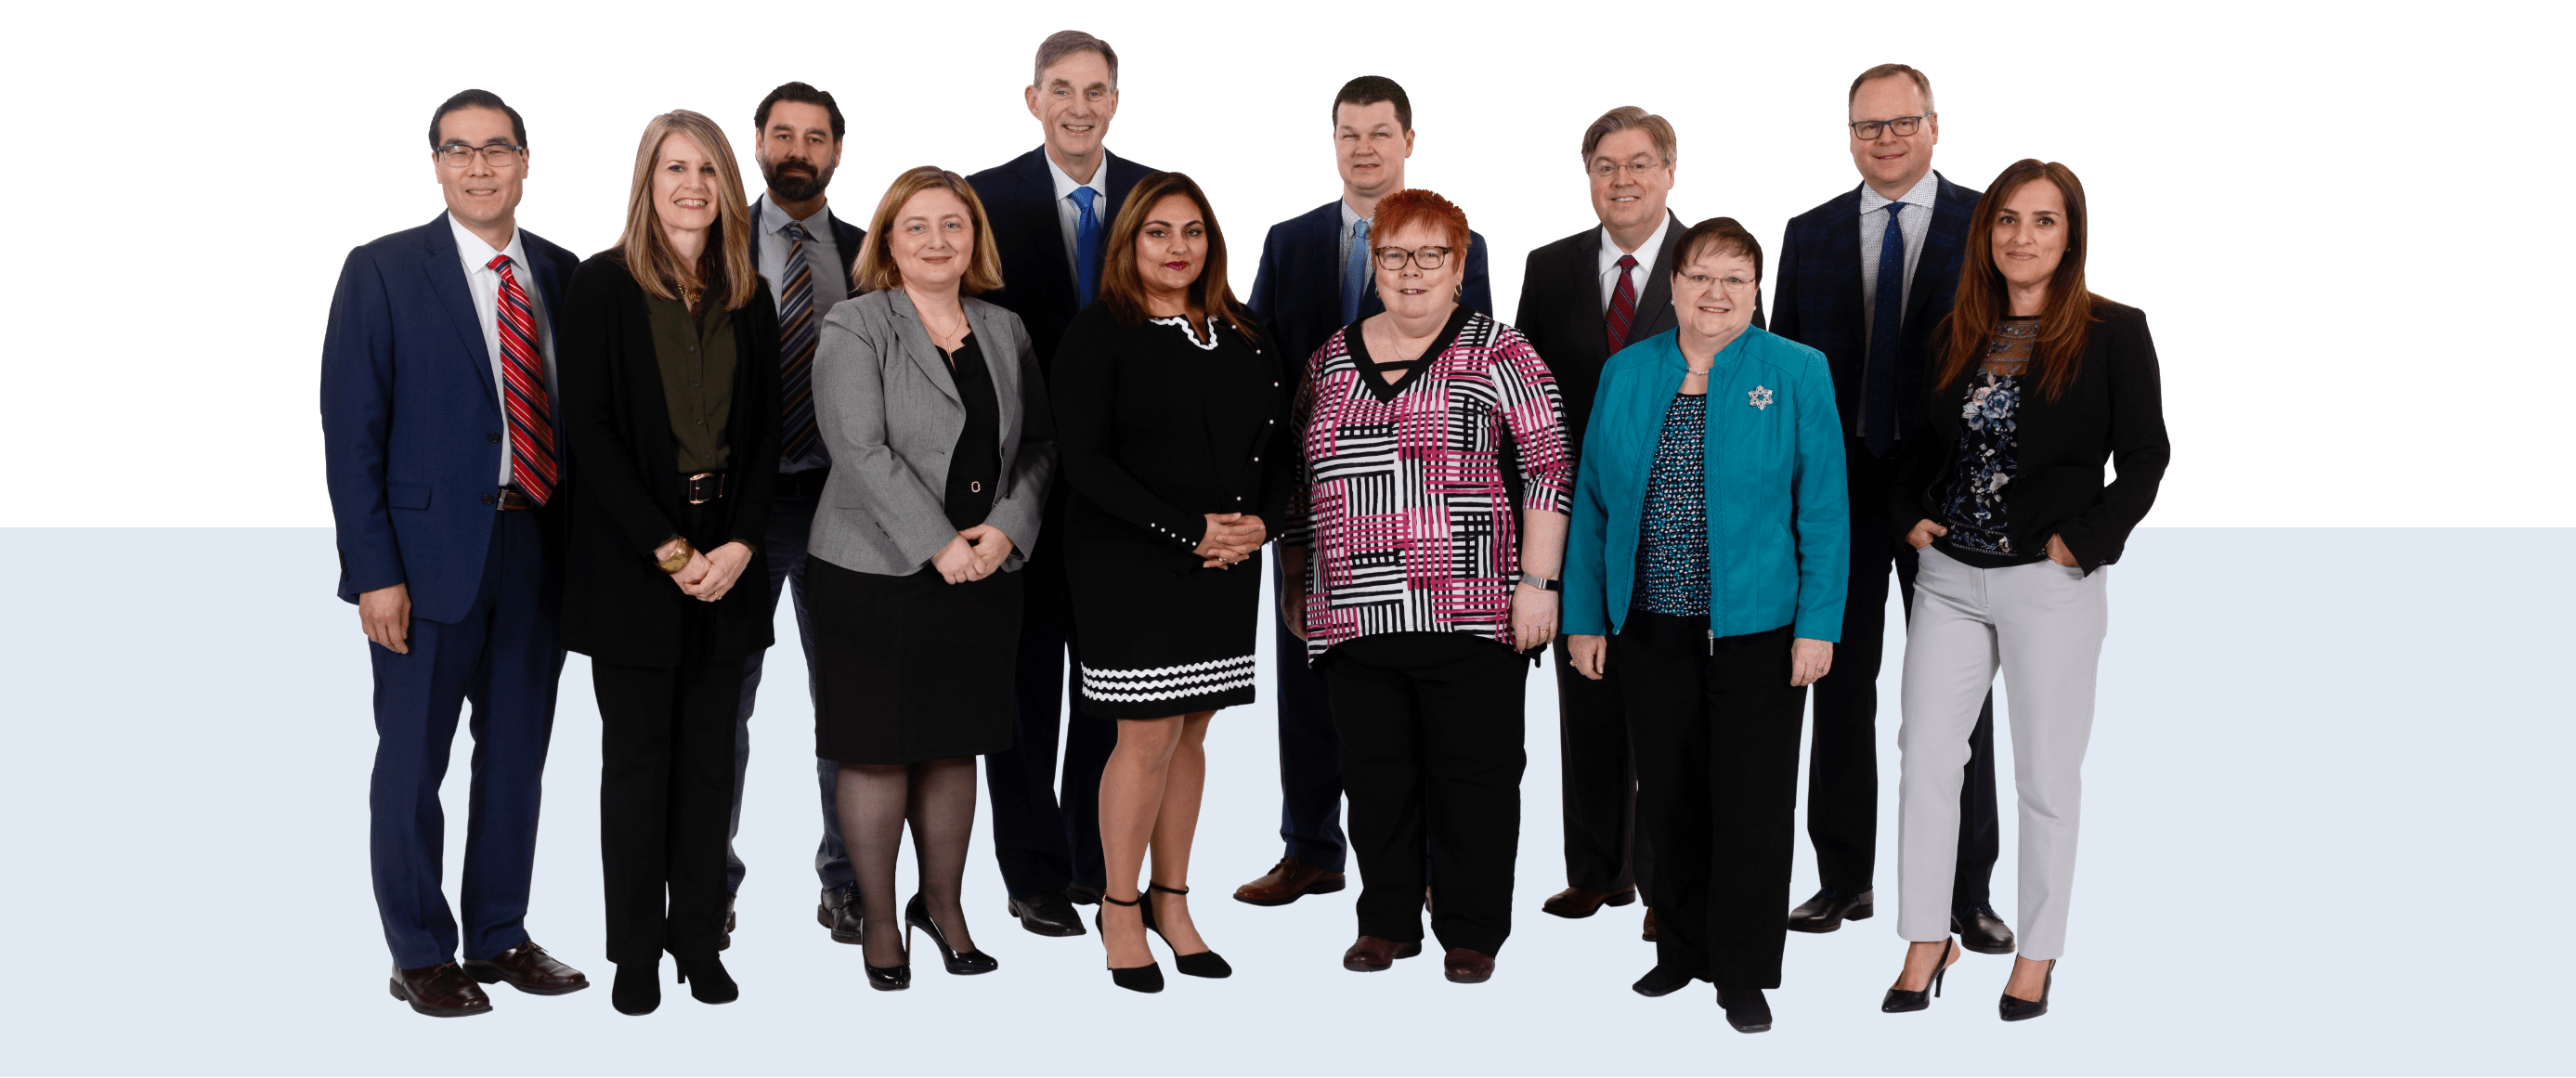 Governance Management Team Image